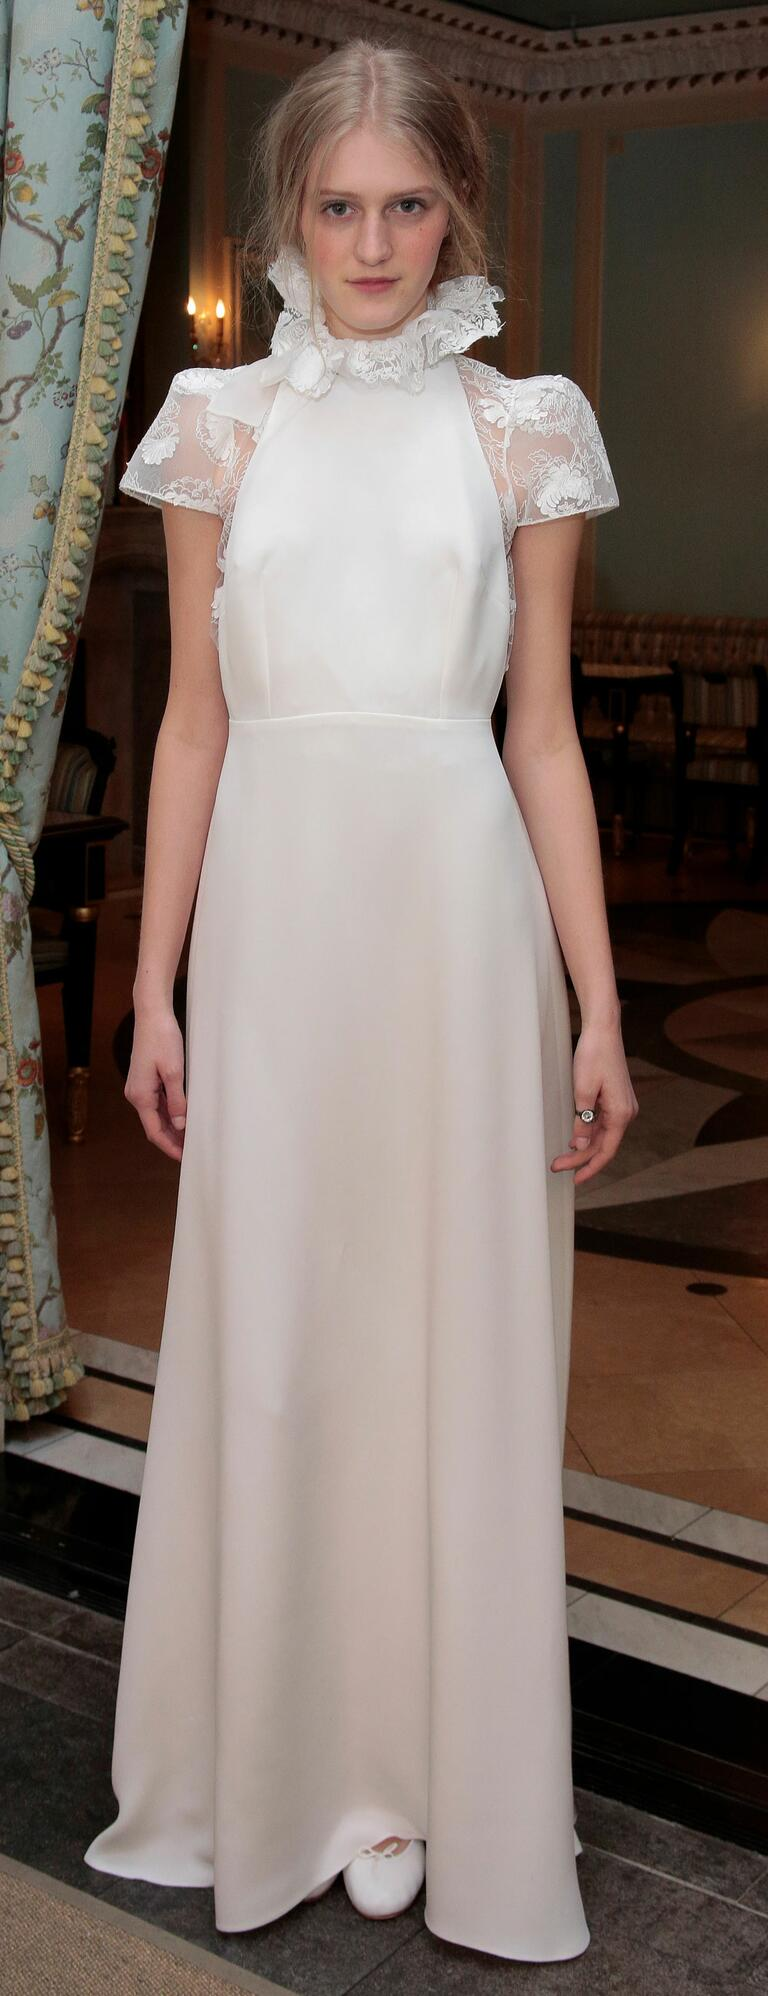 Delphine Manivet's Spring 2017 satin column wedding dress with high lace collar illusion cap sleeves and